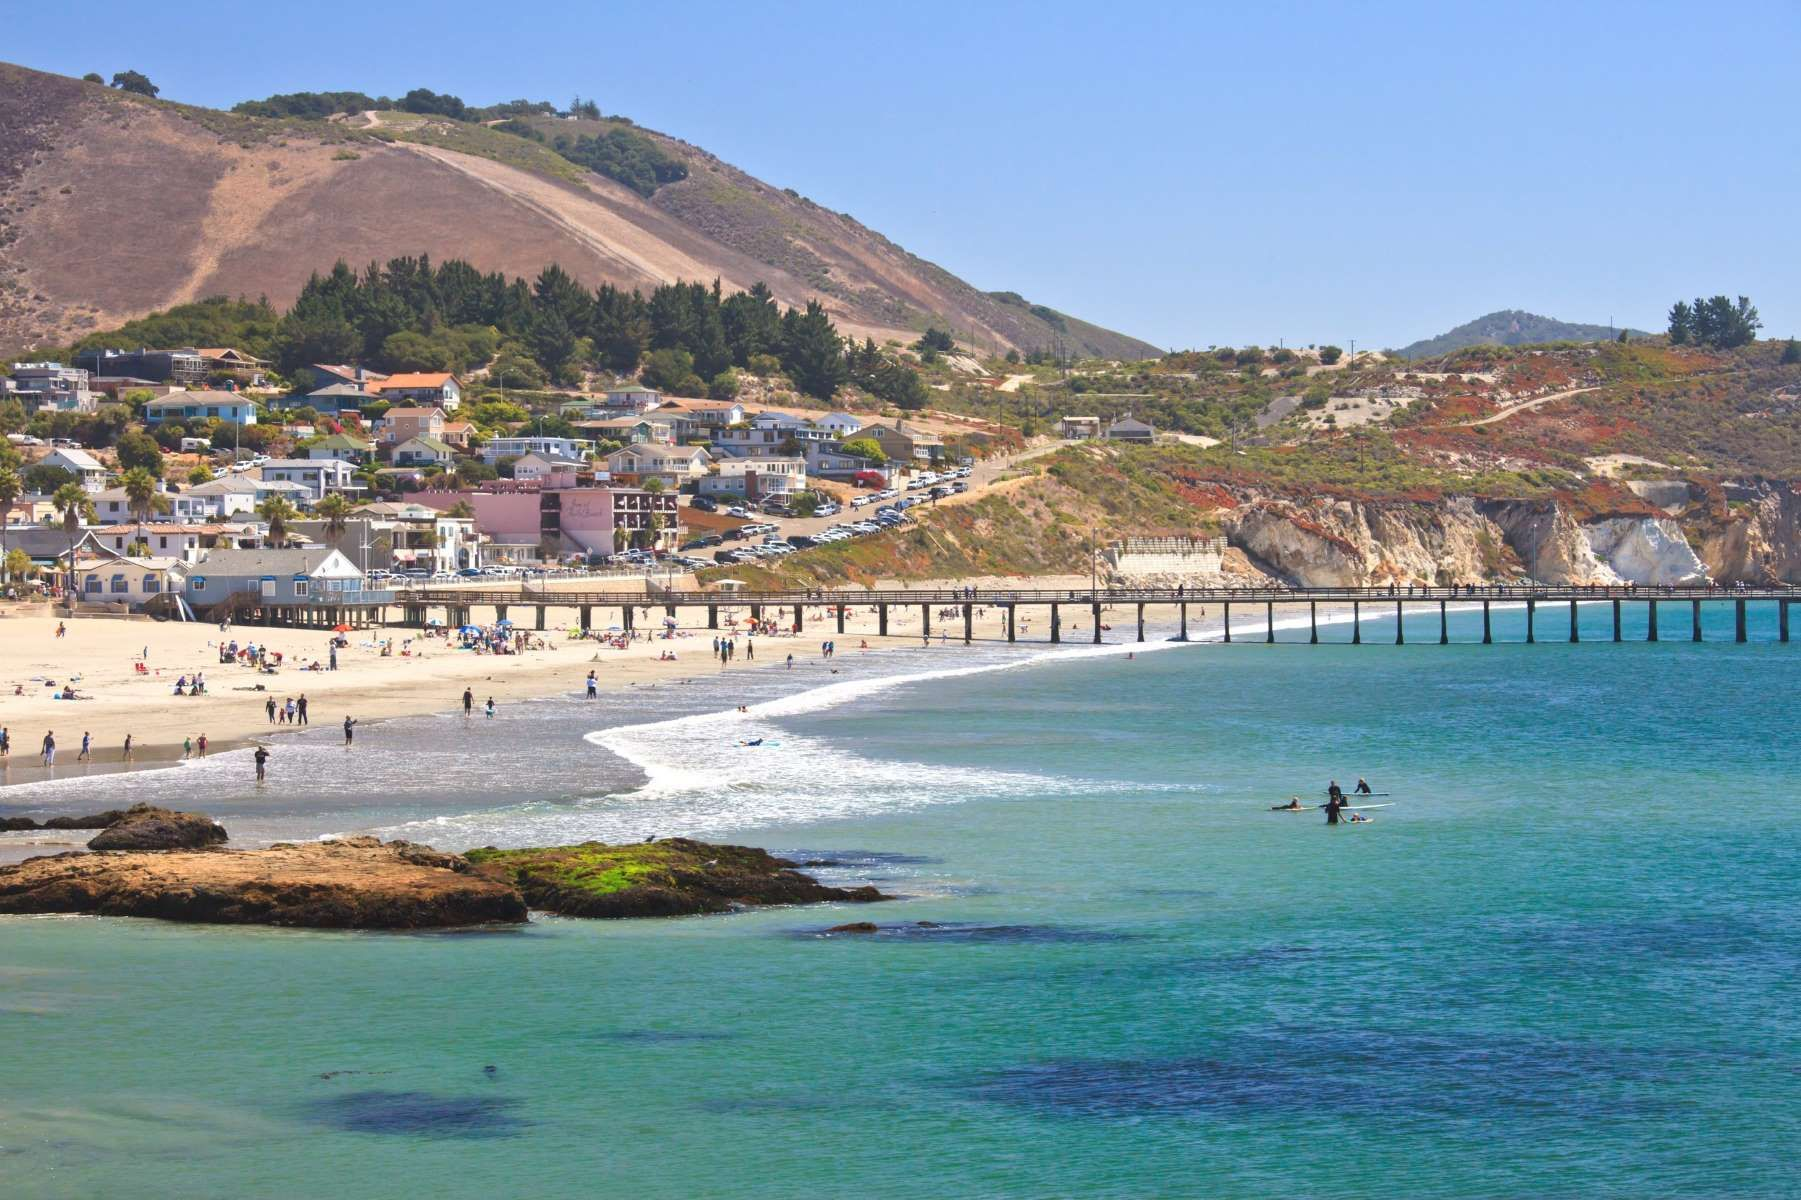 Avila Beach California An Unincorporated Community In San Luis Obispo County About Two Hours North Of Los Angeles Provides Escape From